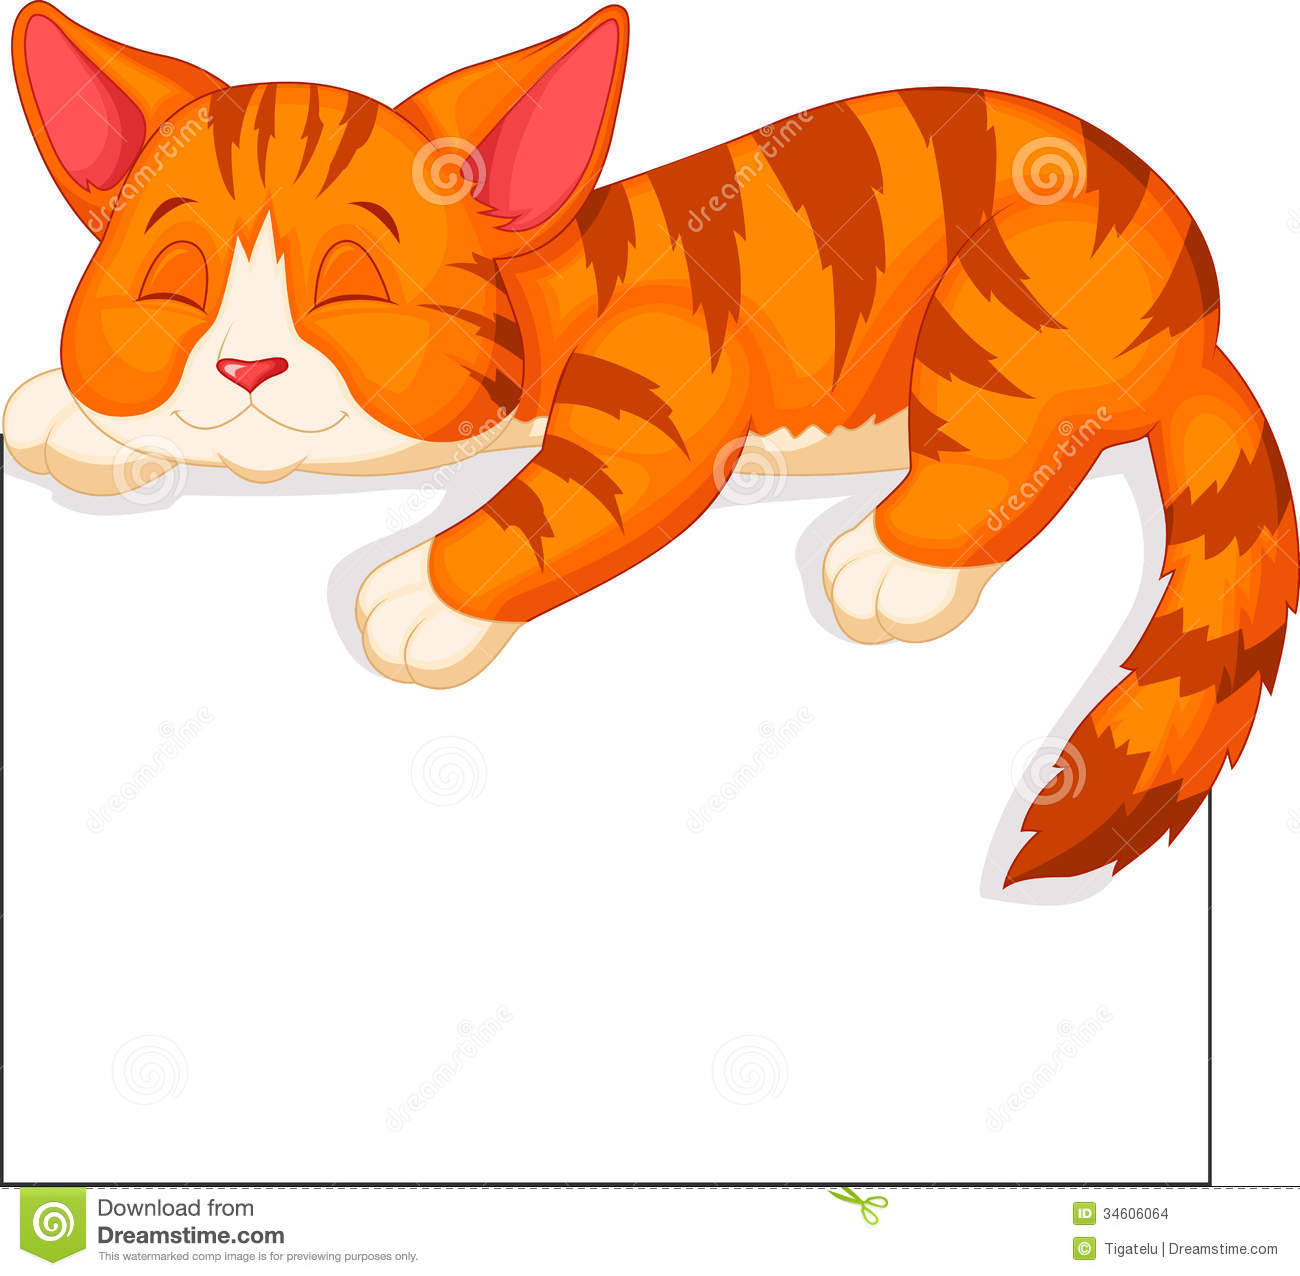 Cute Cat Cartoon Sleeping Stock Images - Image: 34606064